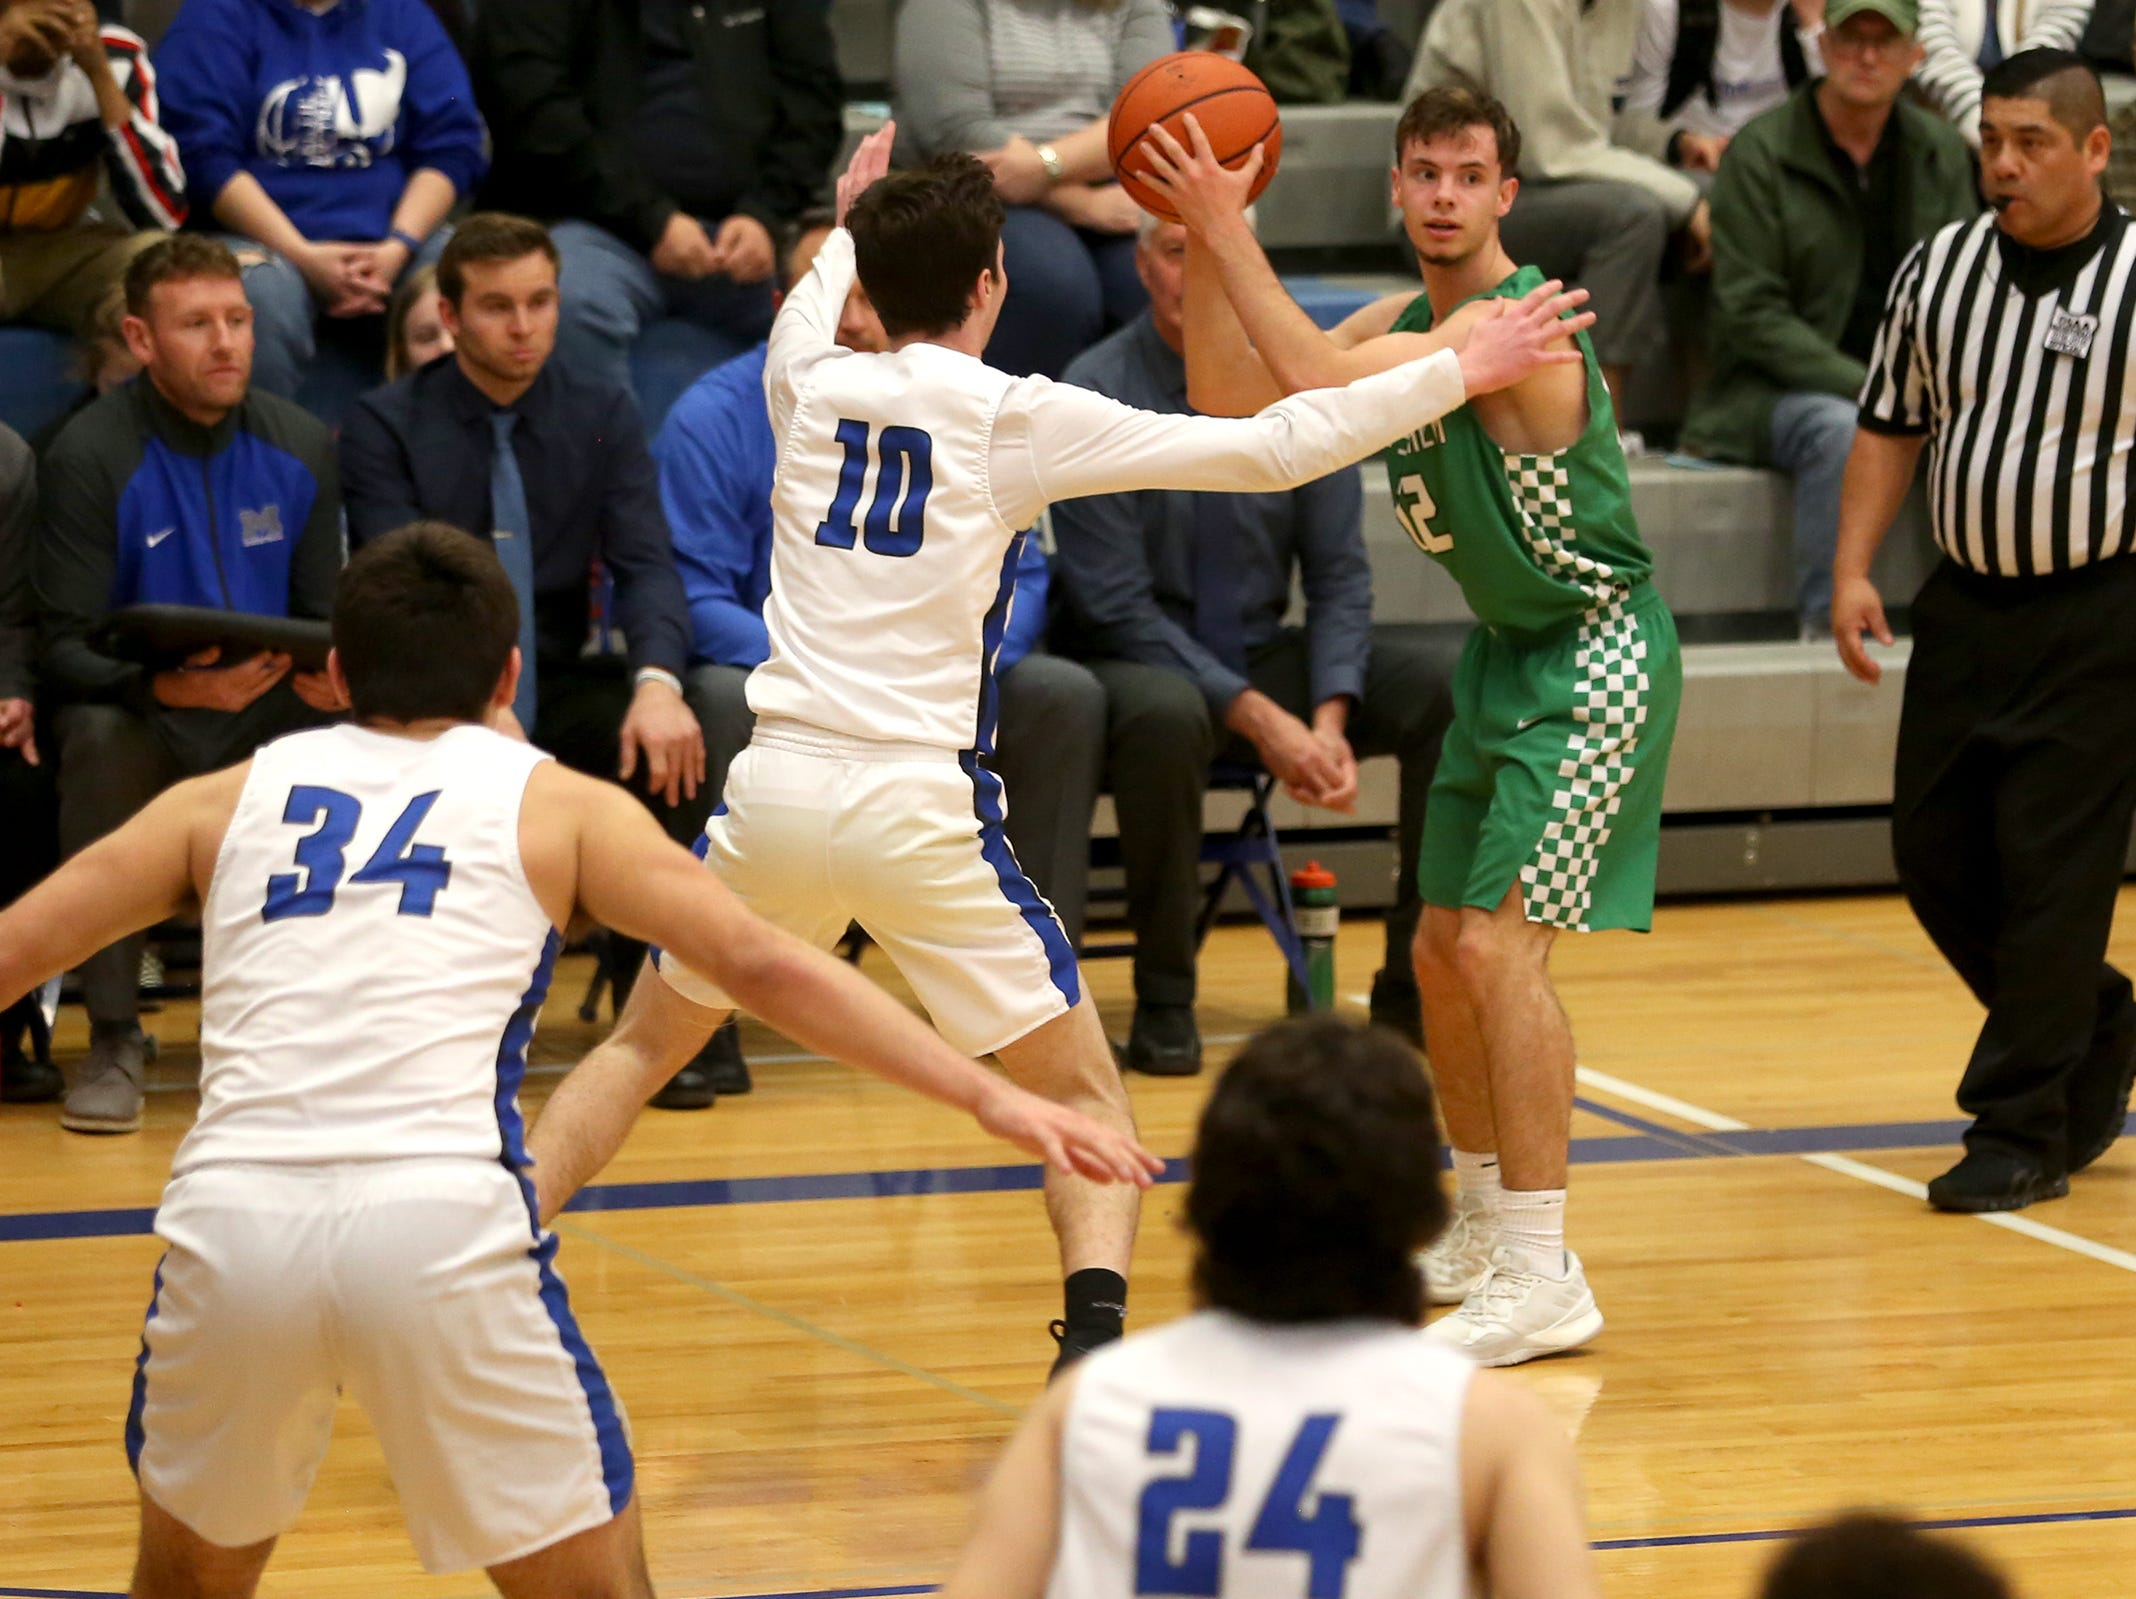 West Salem's Kieran Pruett (12) looks to make a pass during the McNary boys basketball vs. West Salem game at McNary High School in Keizer on Wednesday, Feb. 6, 2019.